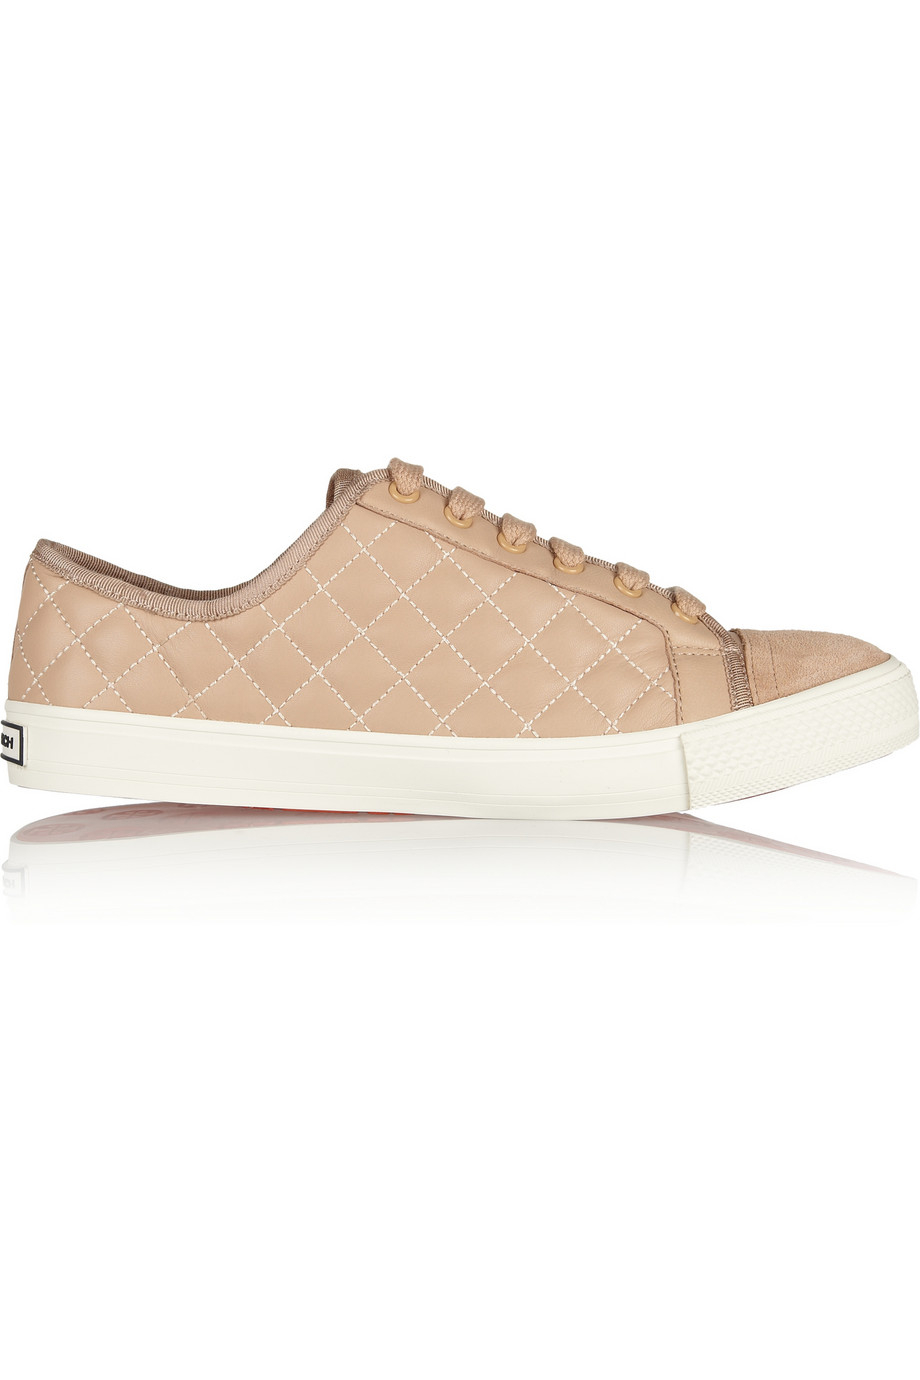 f61f426d8f0c3f Lyst - Tory Burch Caspe Quilted Leather Sneakers in Pink